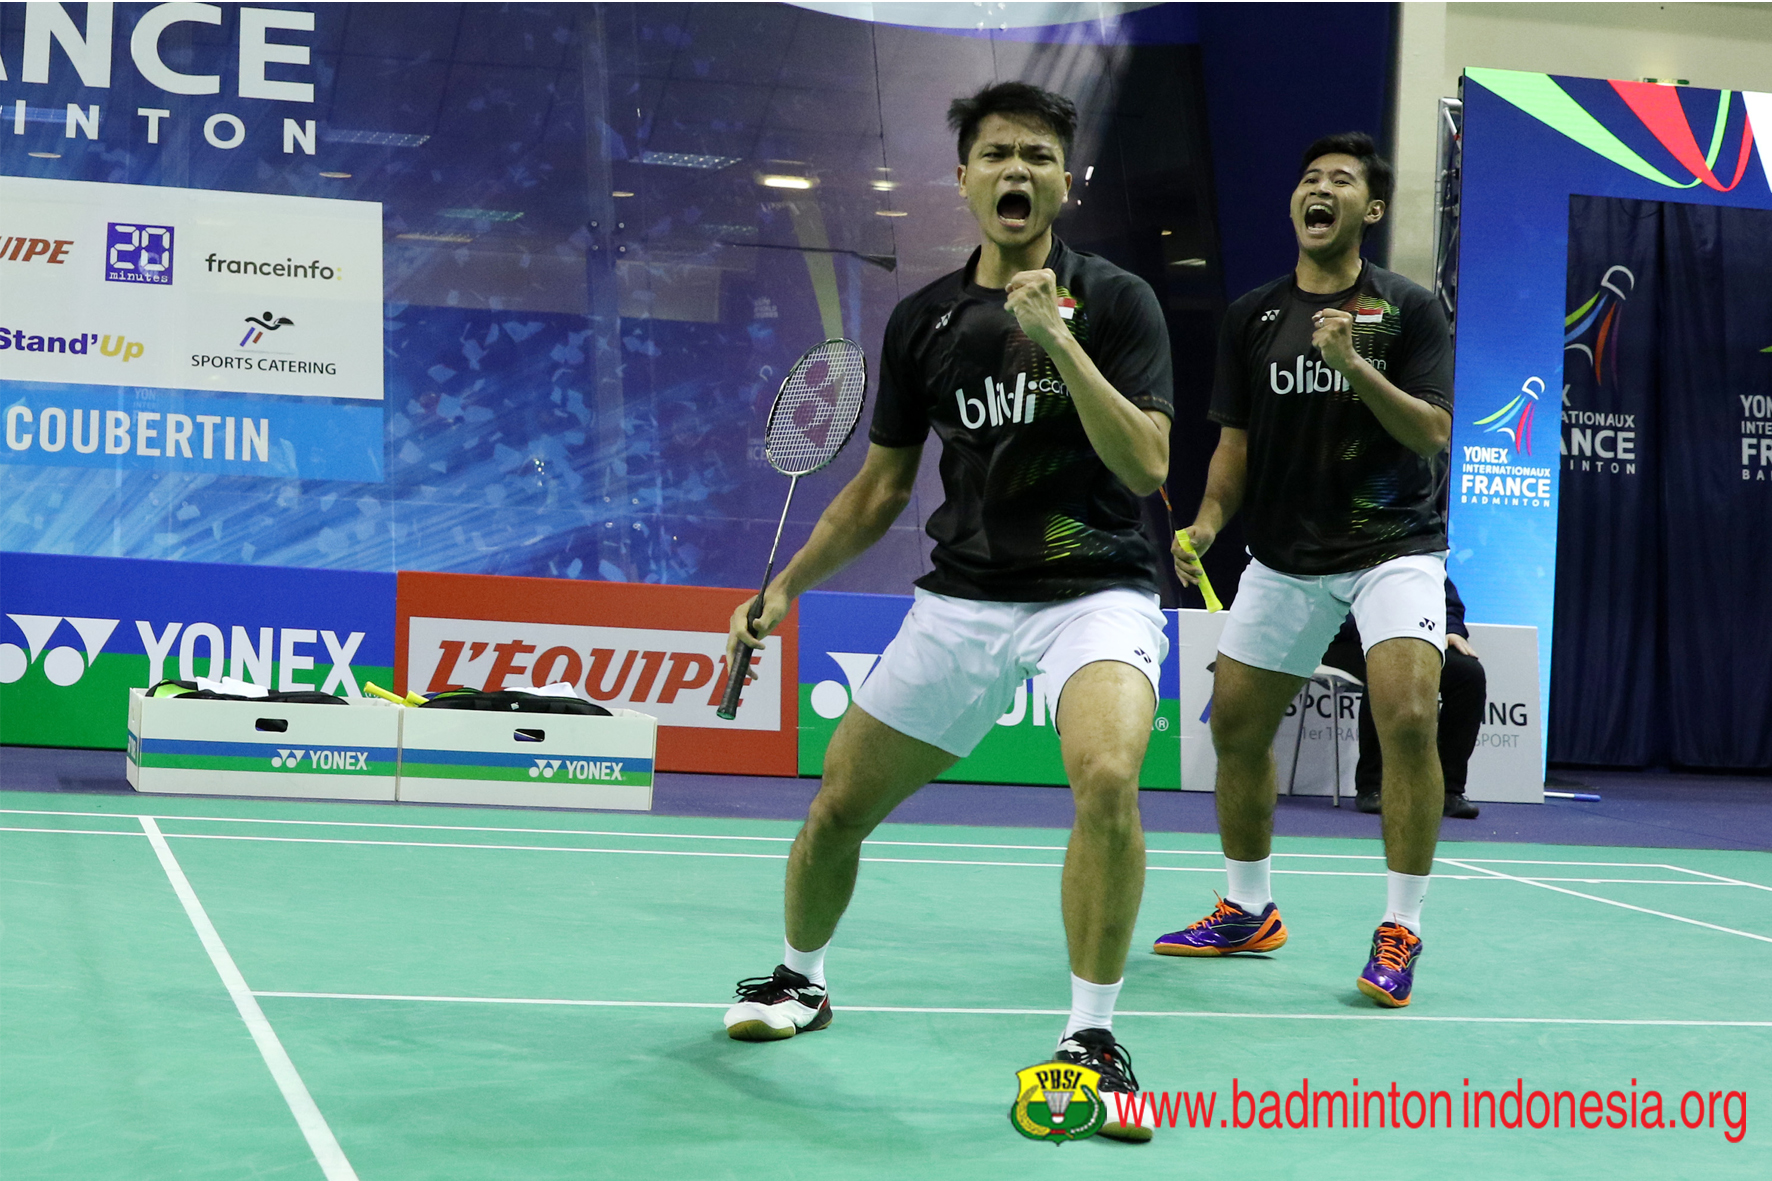 Djarum Badminton French Open Super Series 2016 Angga Ricky Ke